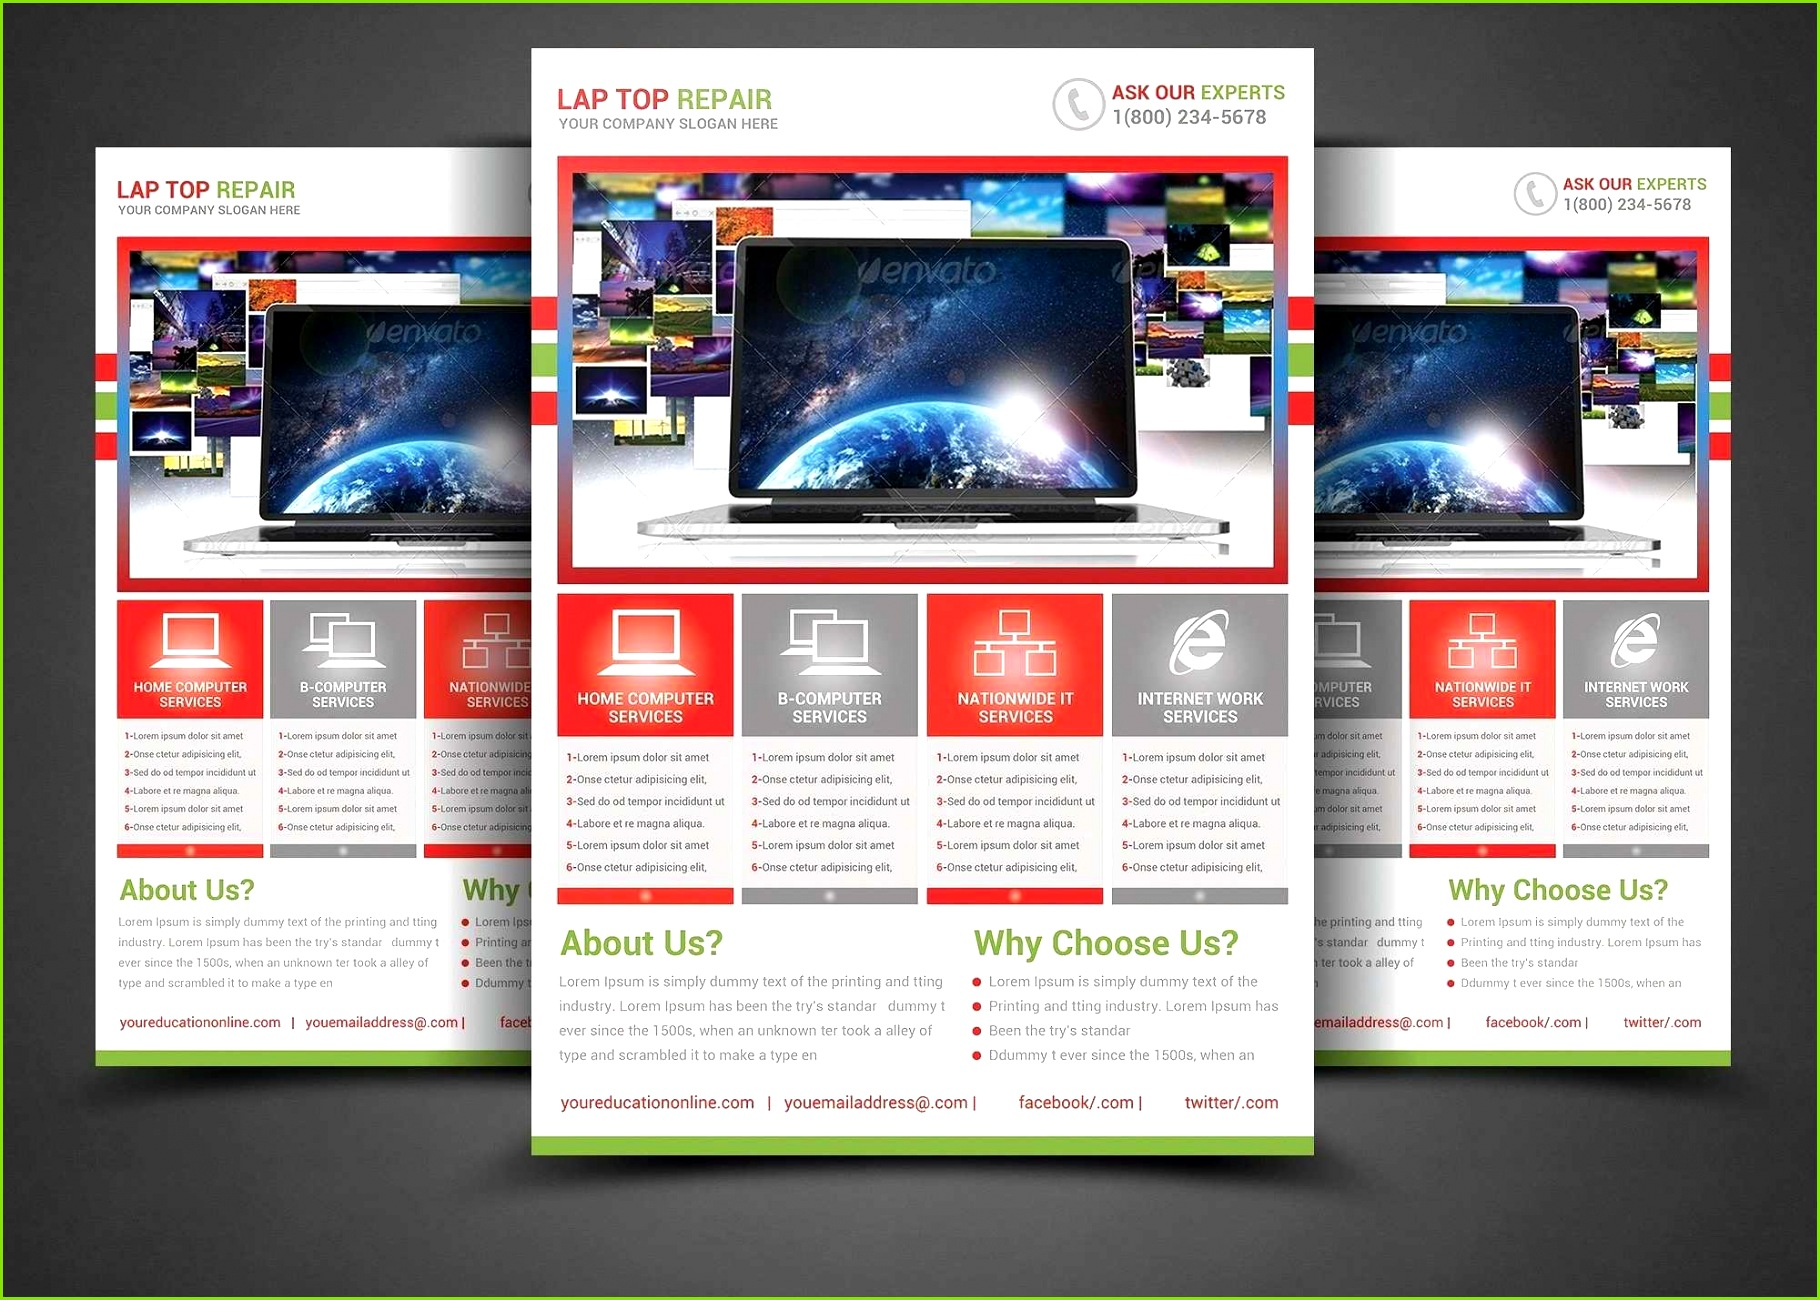 Microsoft fice Word 2010 Best Free Microsoft Word 2010 Newsletter Templates Image Collection